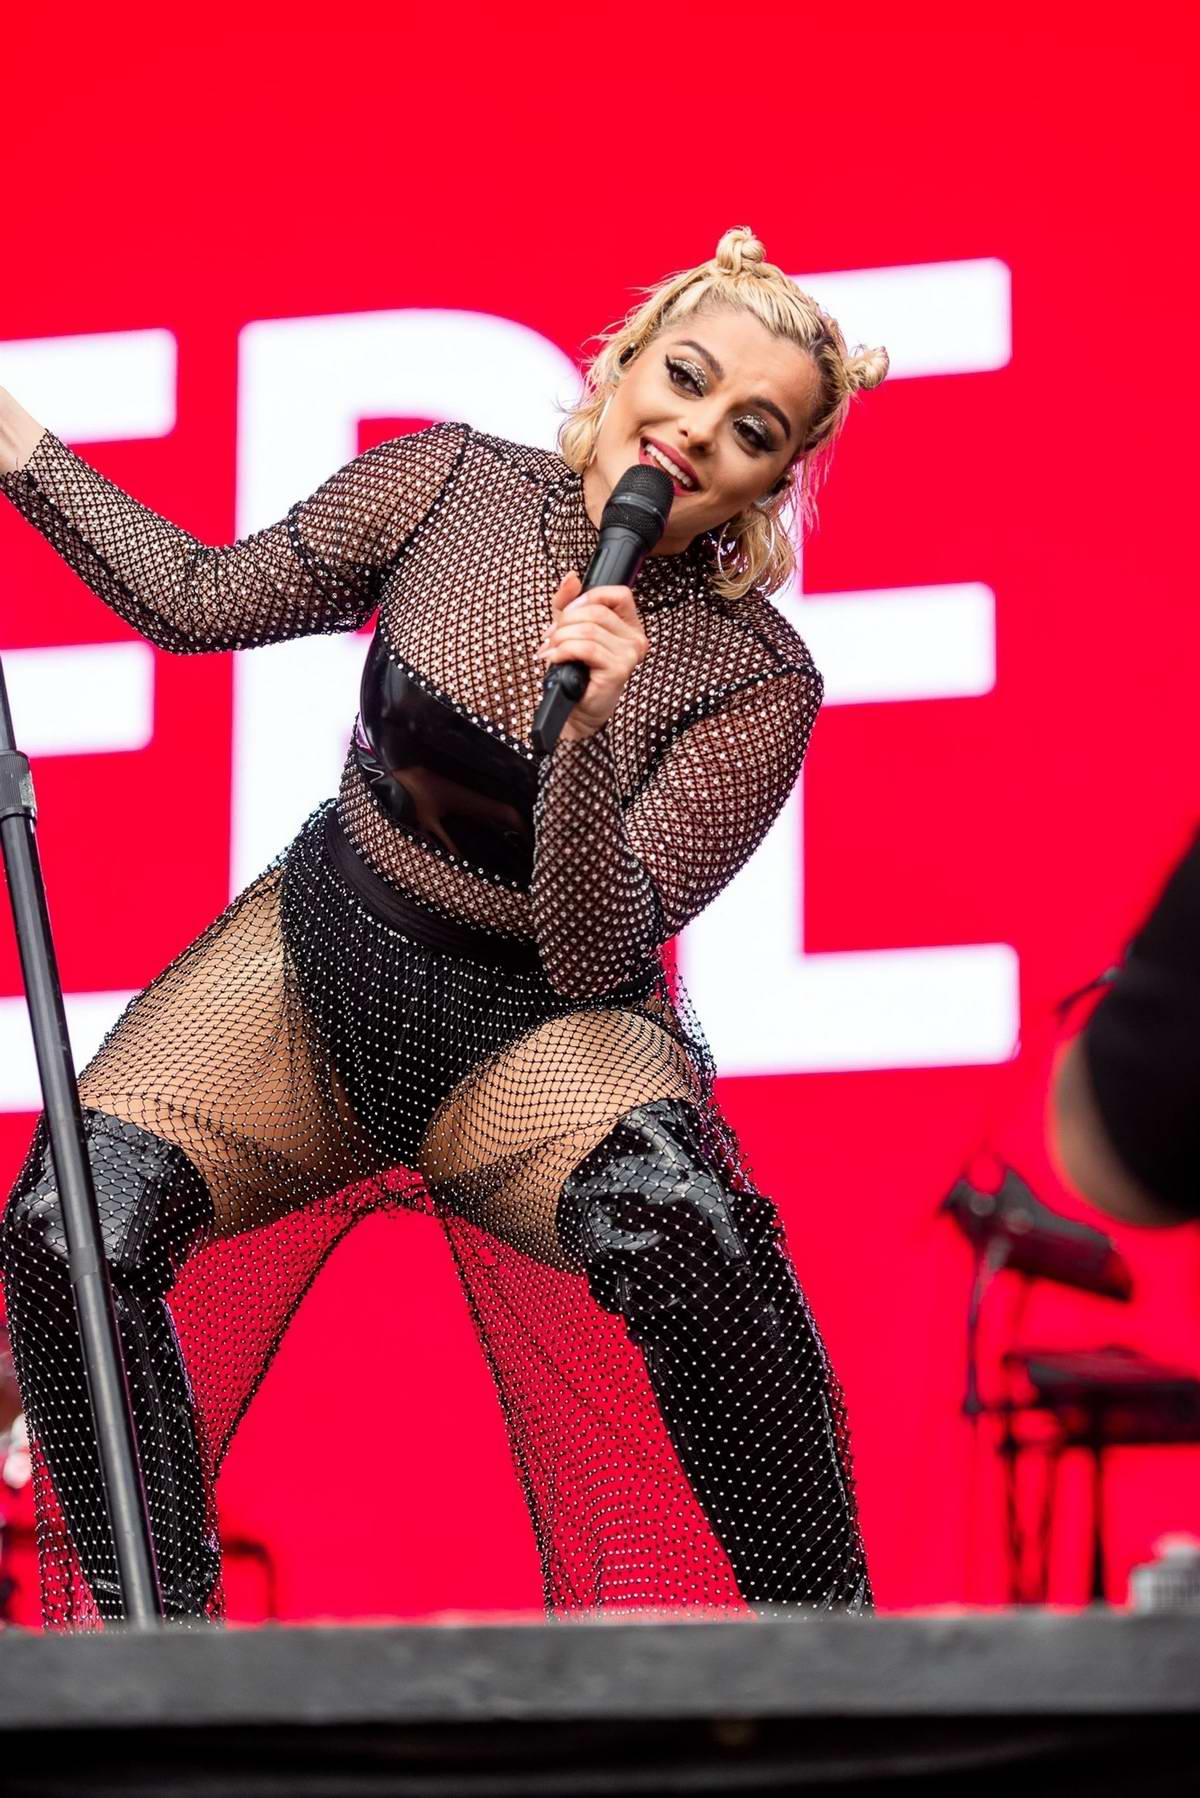 Bebe Rexha Performs At 2019 Hangout Music Festival In Gulf